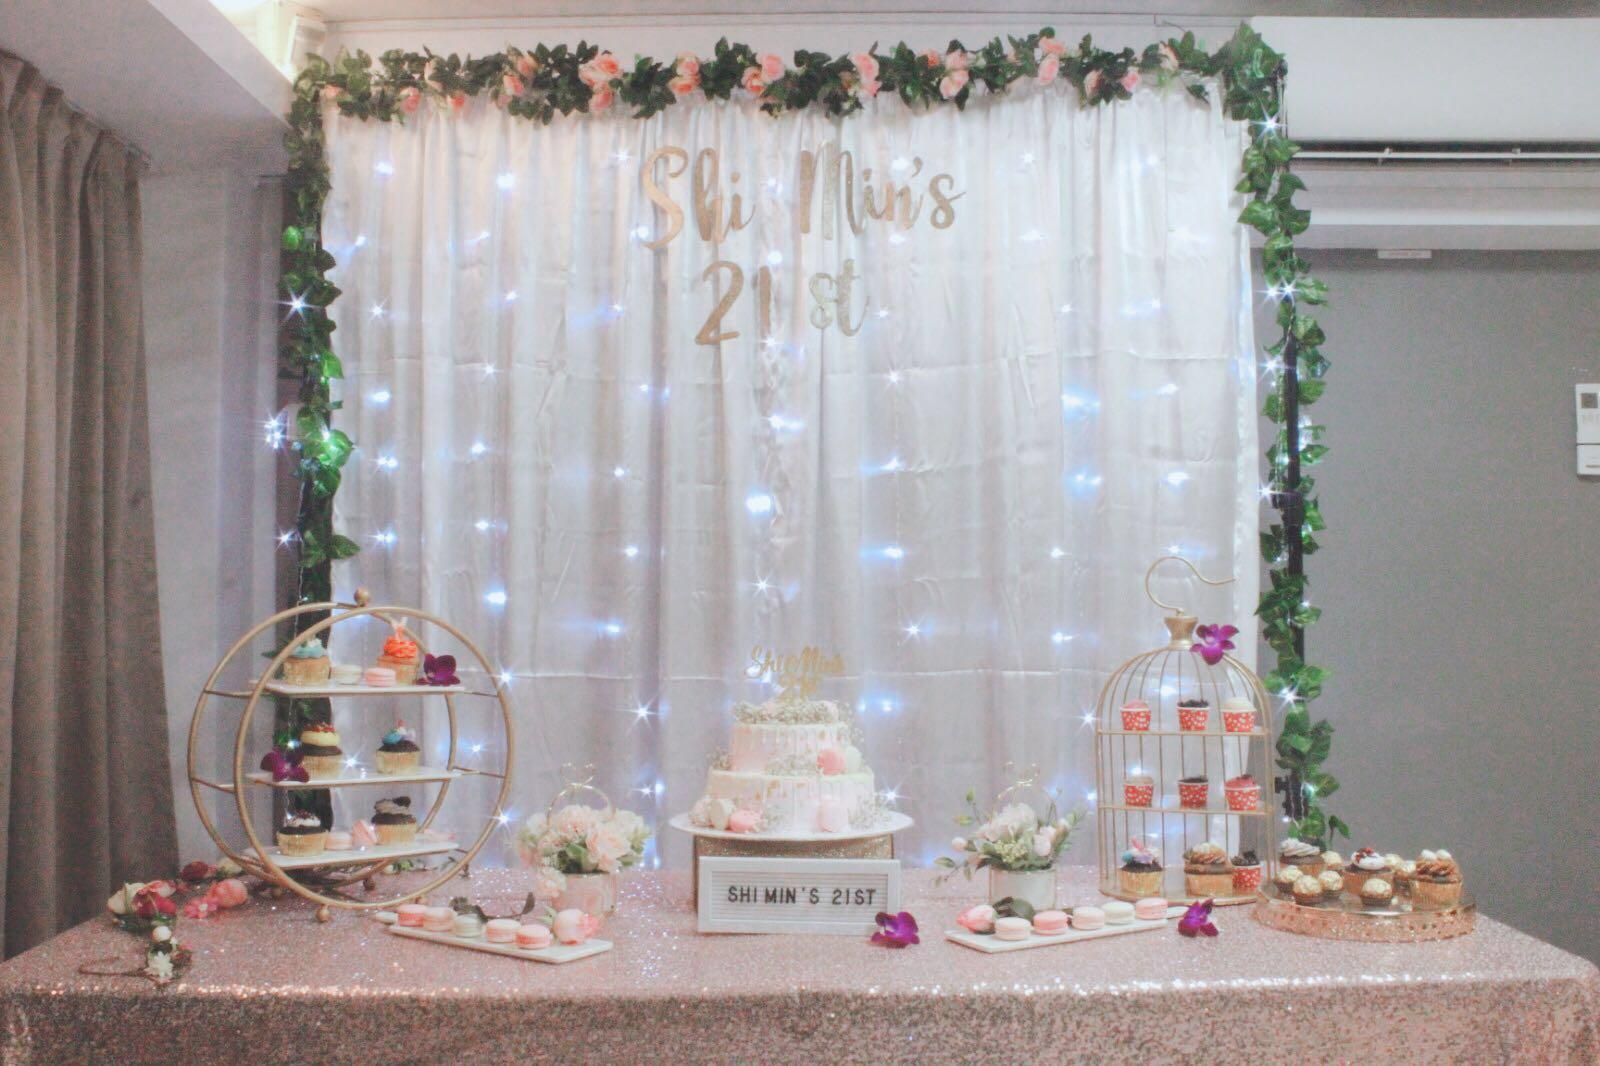 Rental White Curtains With Fairy Lights Design Craft Others On Carousell